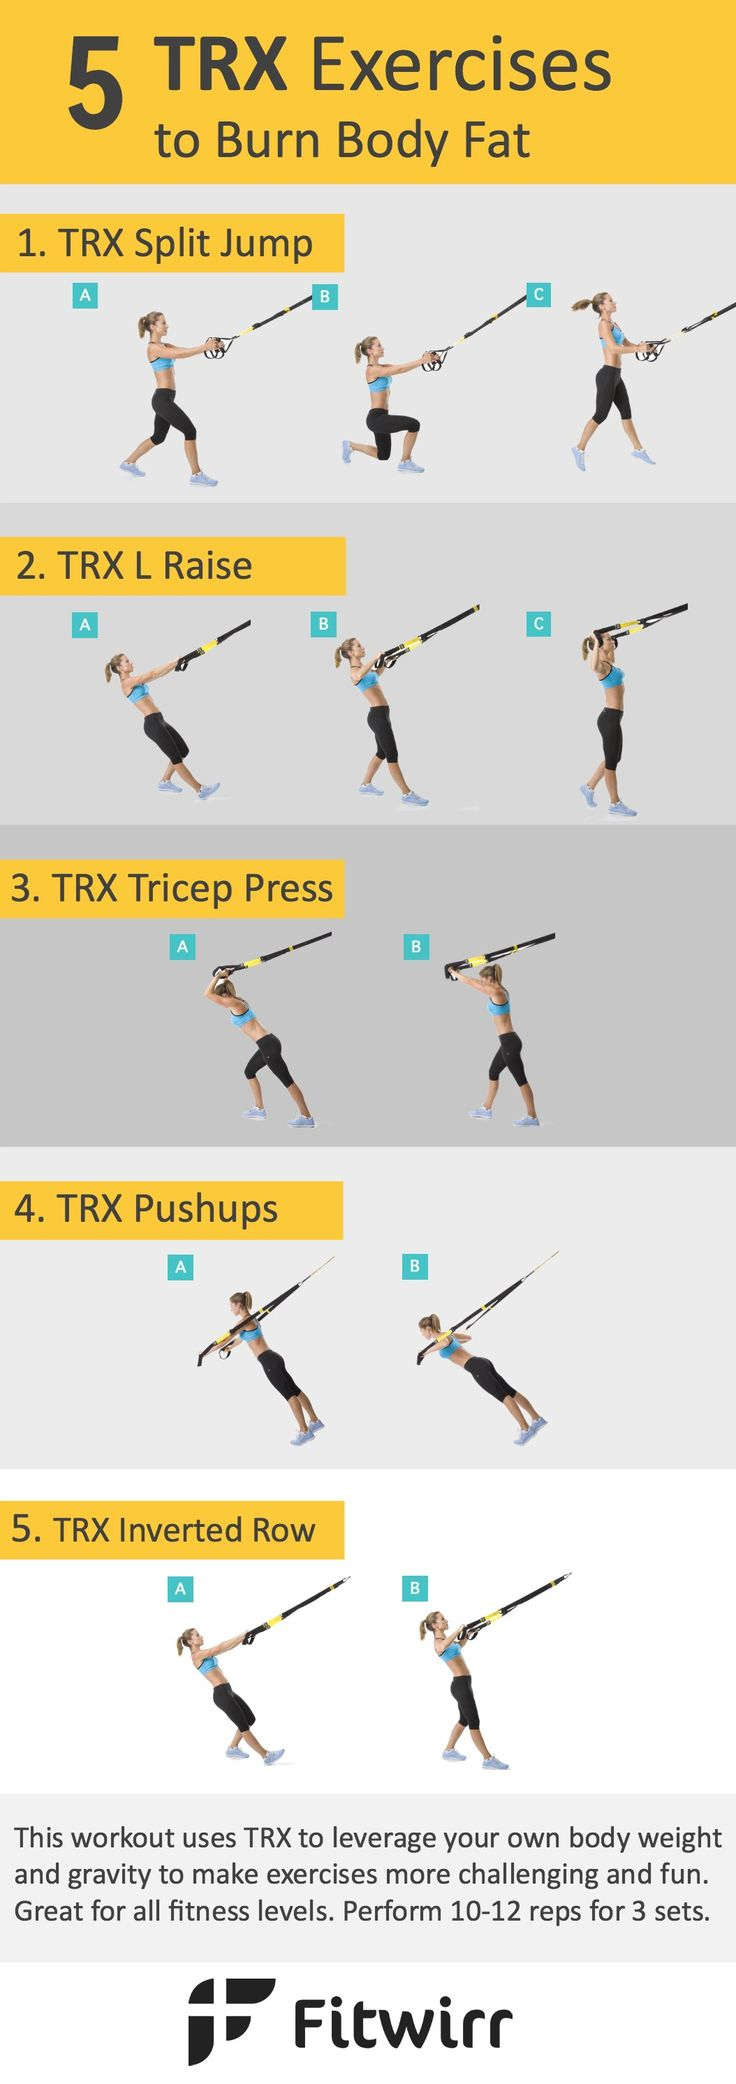 5 effective TRX exercises for a full-body workout. TRX (short for total-body resistance exercises) is a tool that leverages gravity and your body weight to turn bodyweight exercises like pushups and rows supper challenging and fun. Here are the top 5 TRX exercises for a full-body fat burning workout.